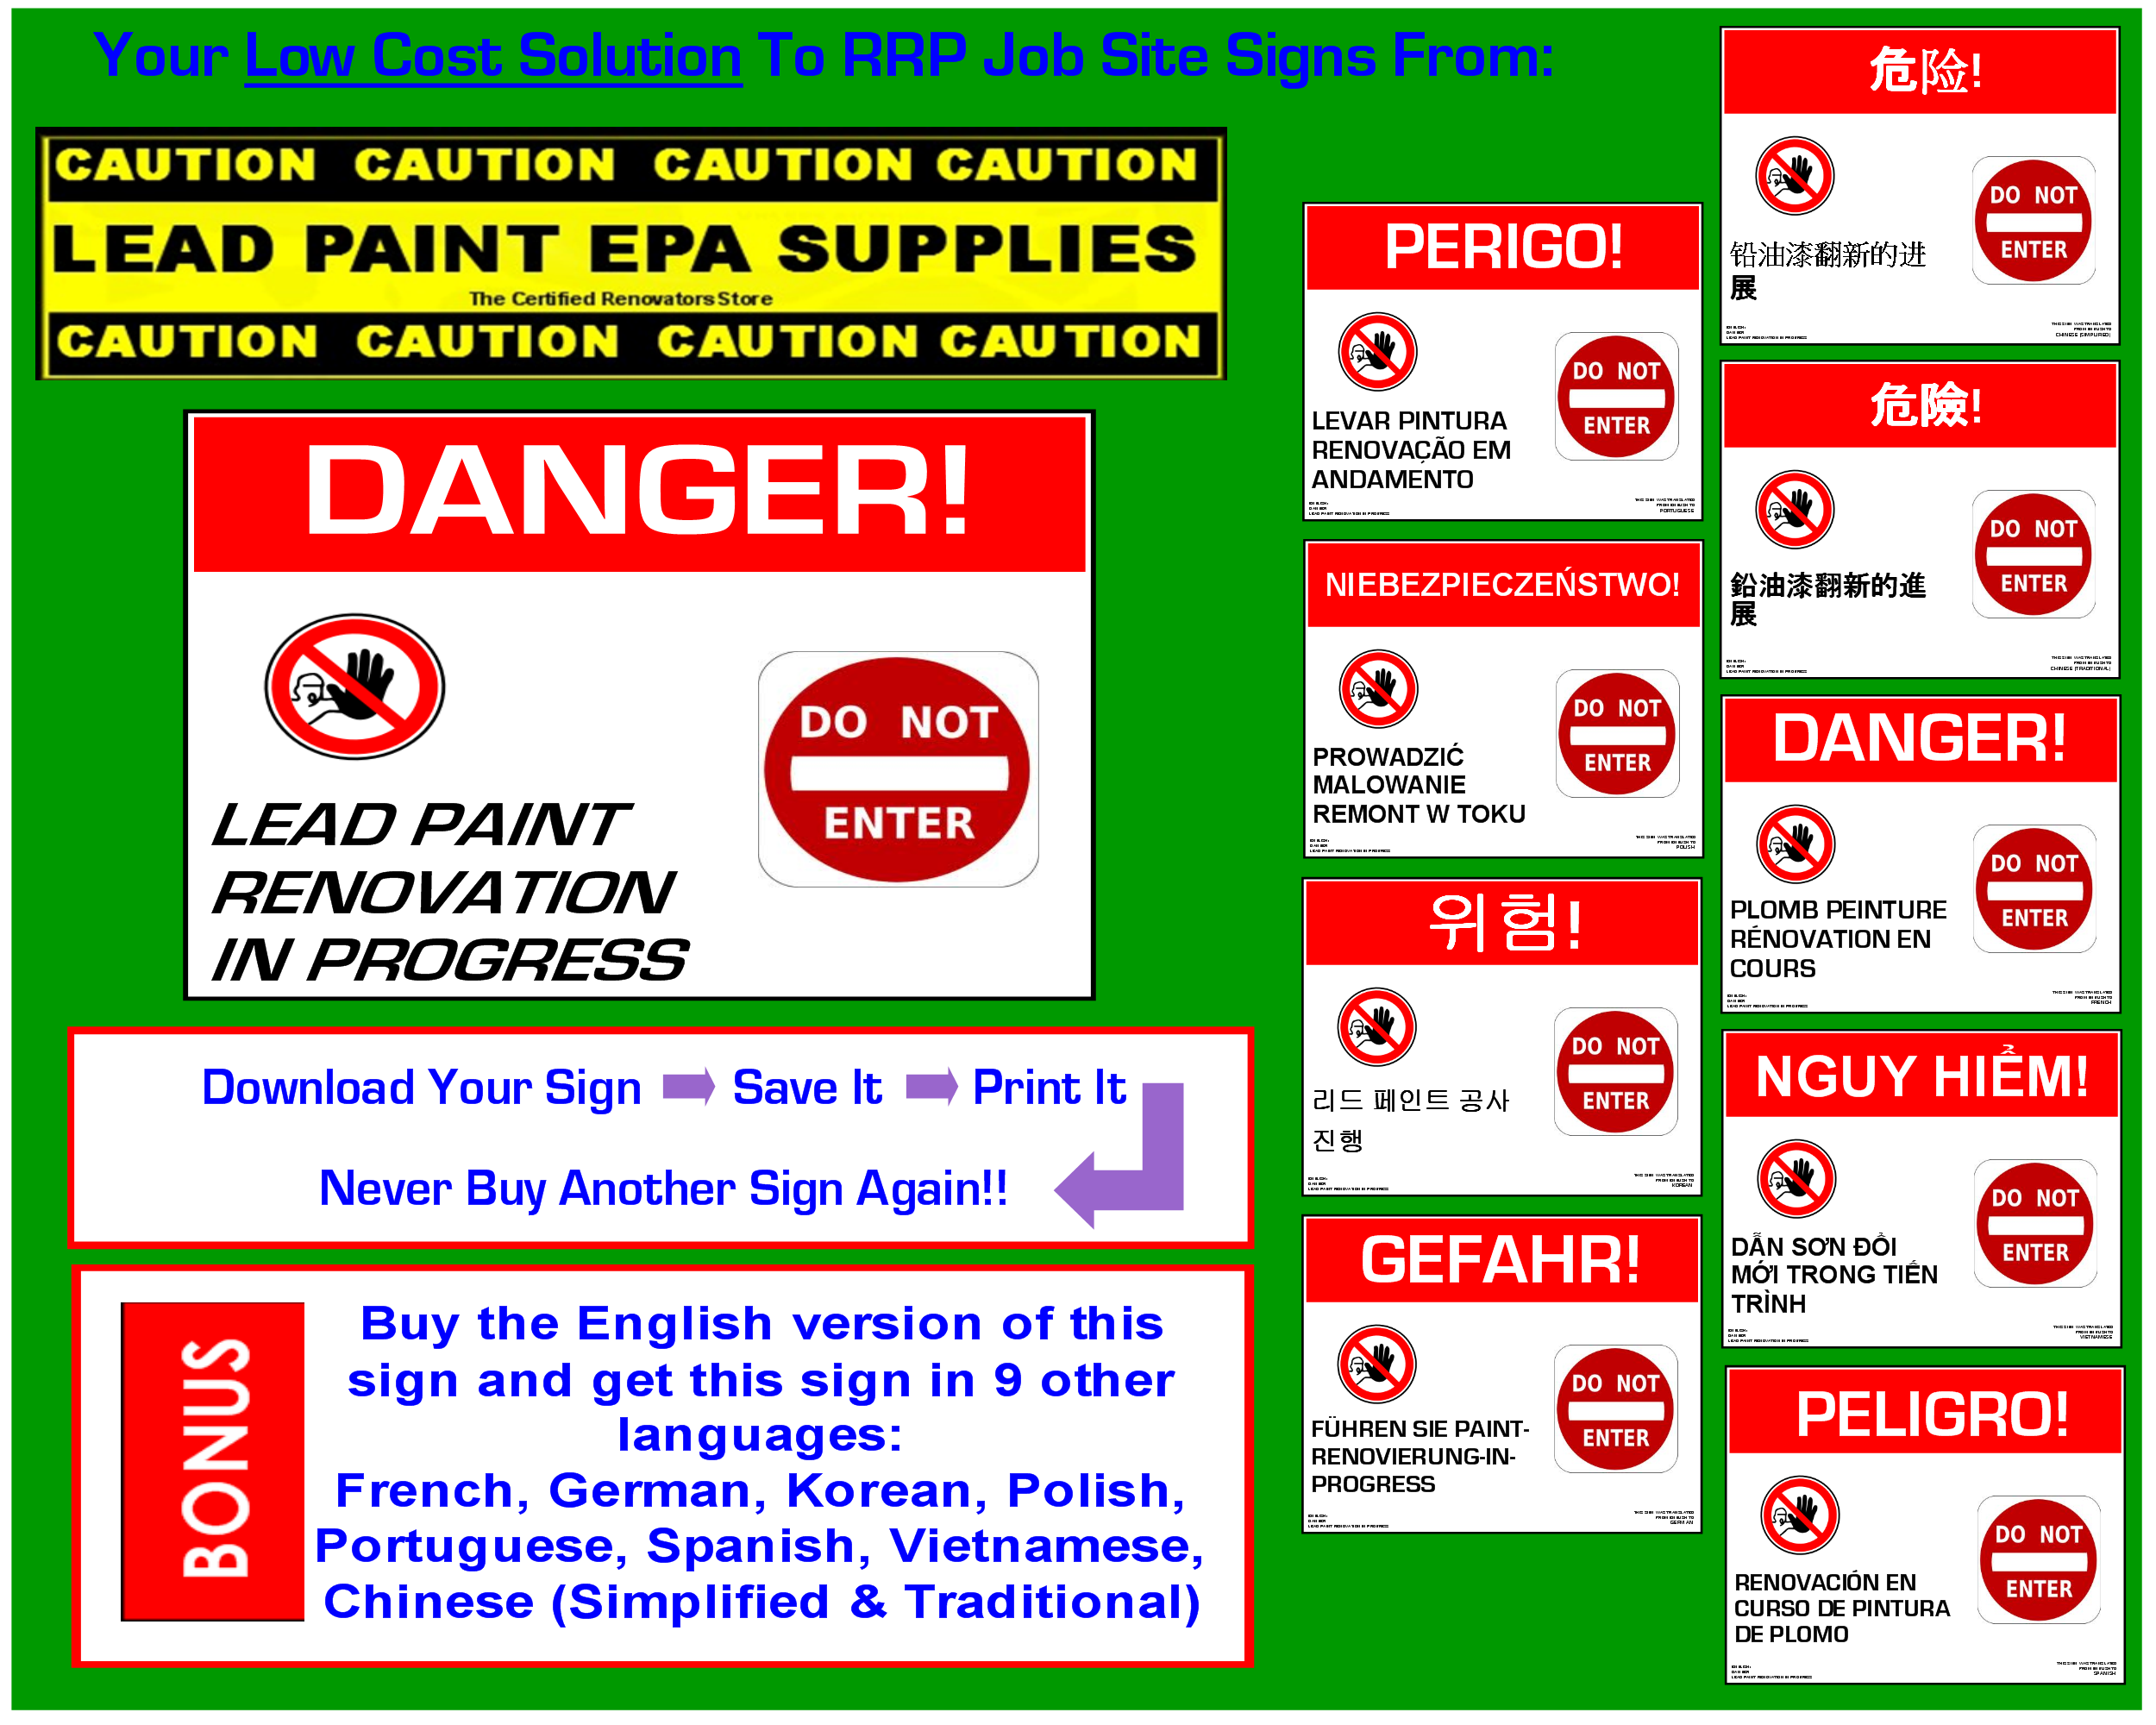 lead-paint-renovation-do-not-enter-banner-grouped-.png